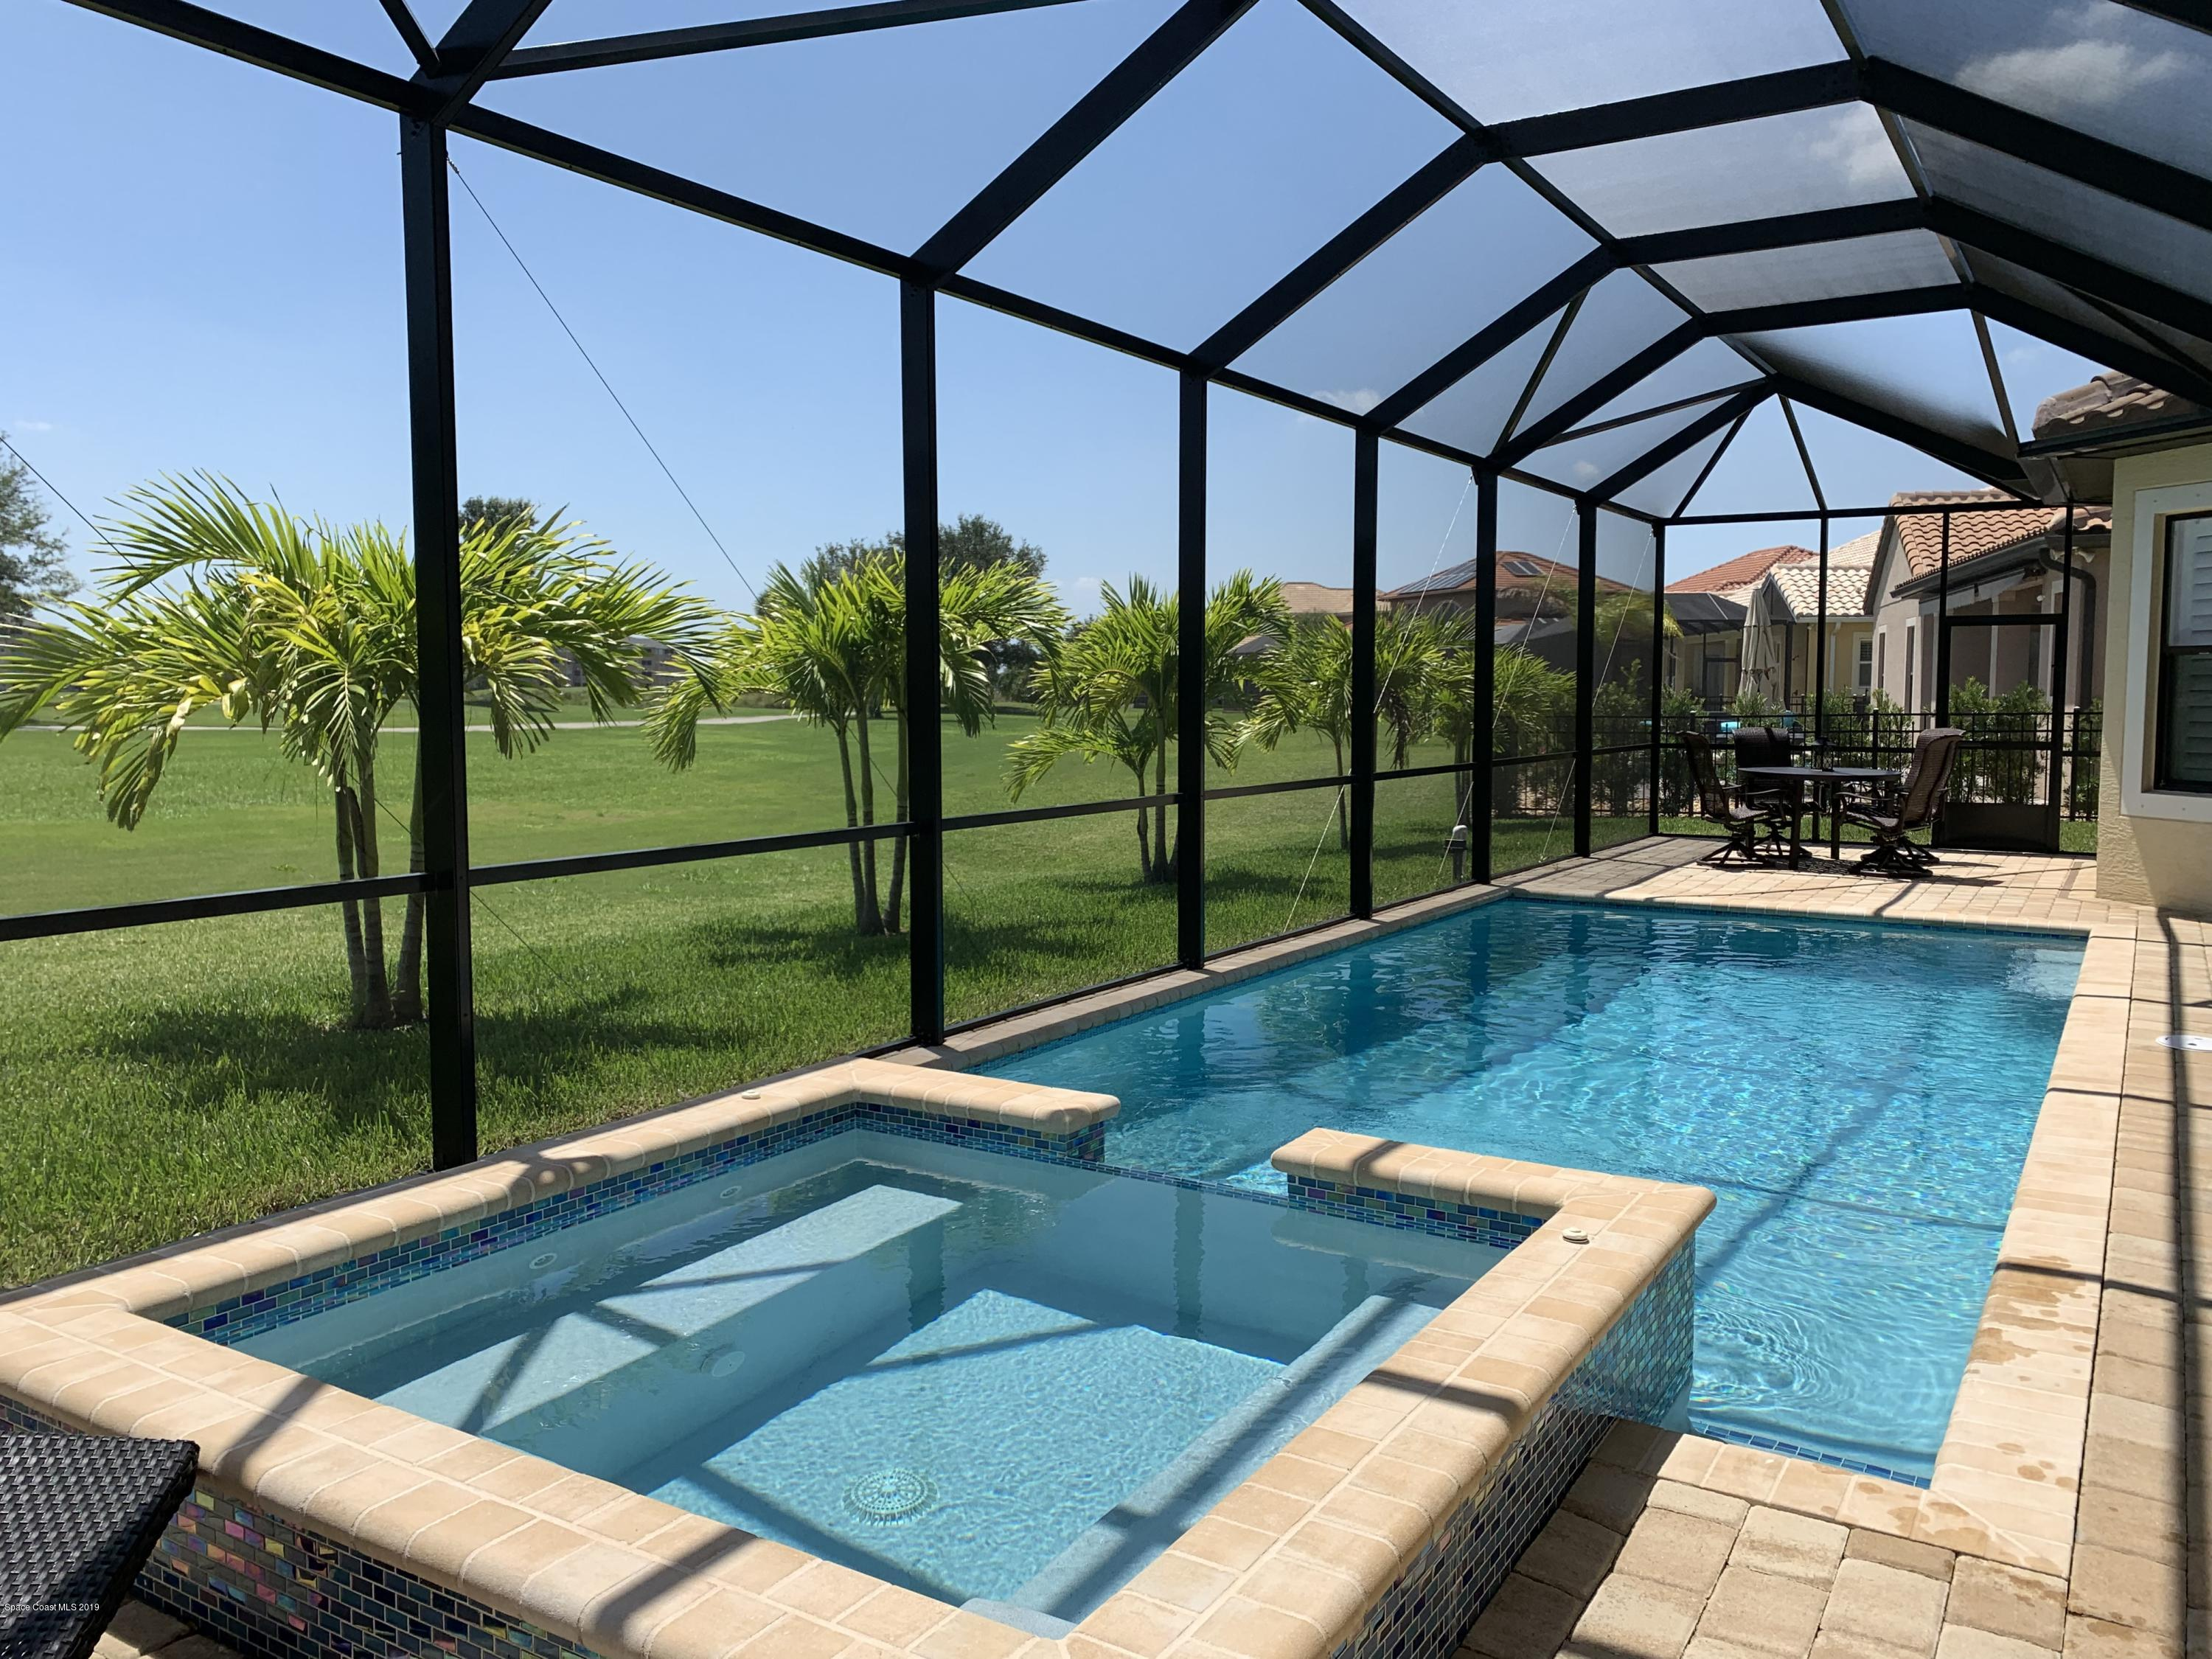 Single Family Homes for Sale at 3318 Lamanga Melbourne, Florida 32940 United States